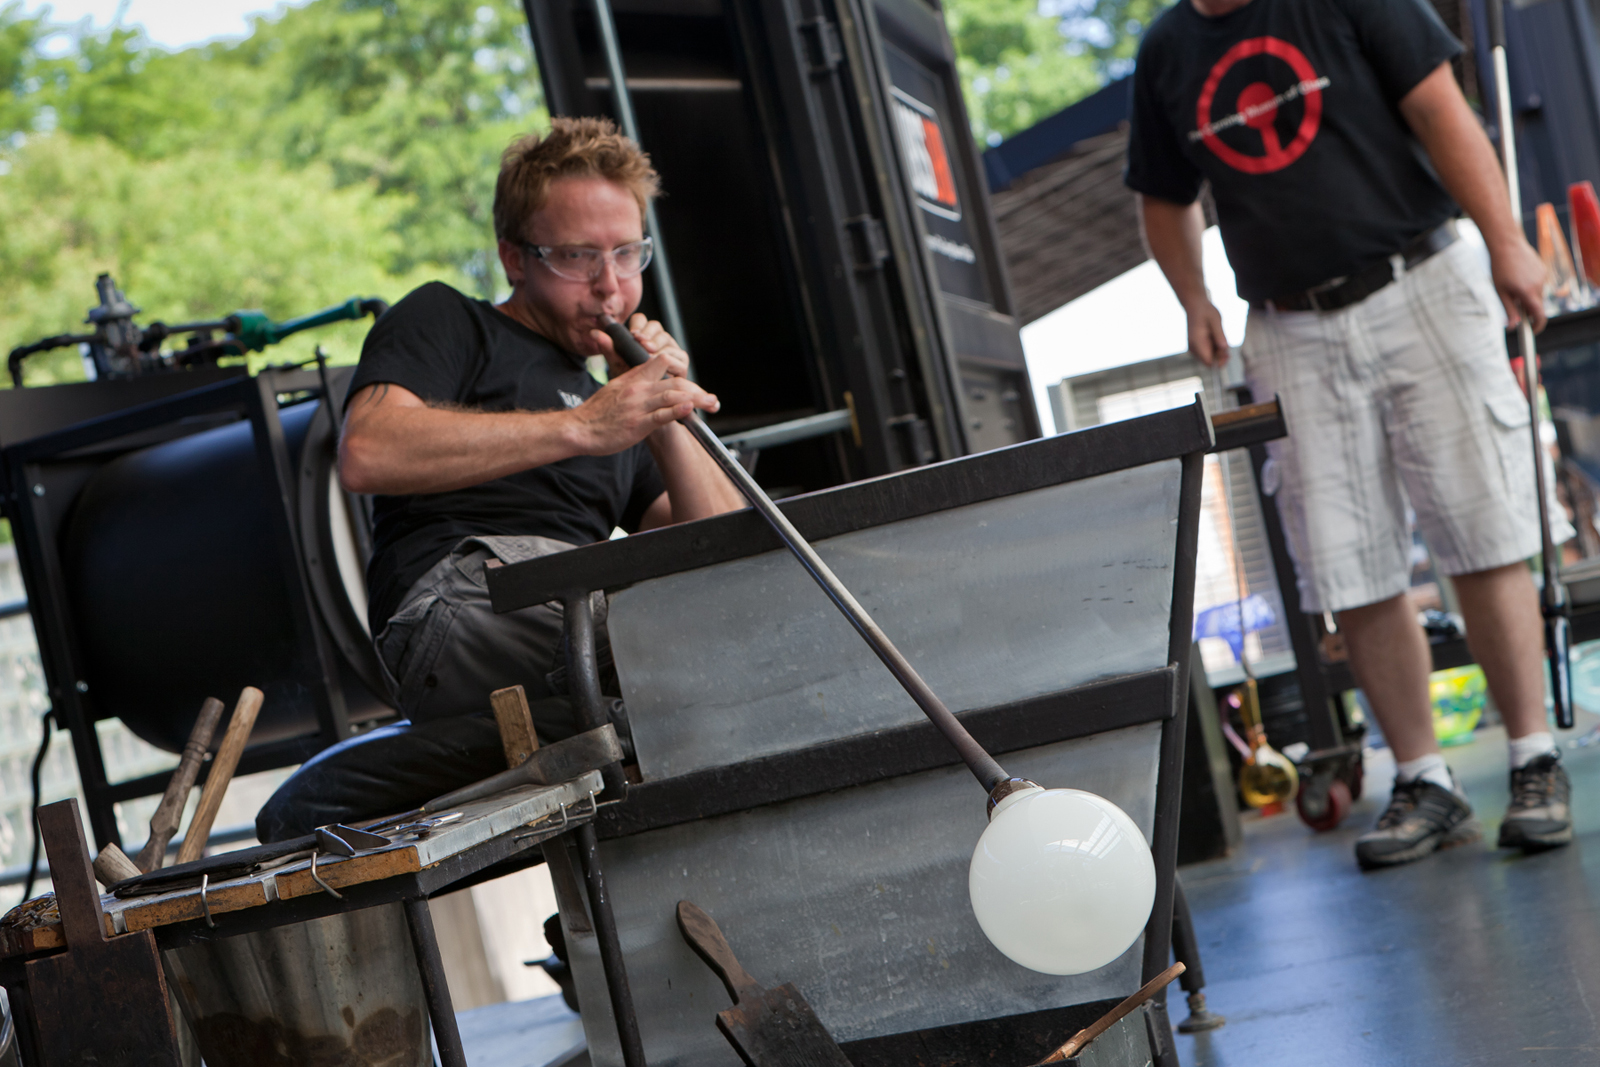 Gaffer Chris Rochelle works with designer Marc Thorpe during GlassLab in Corning